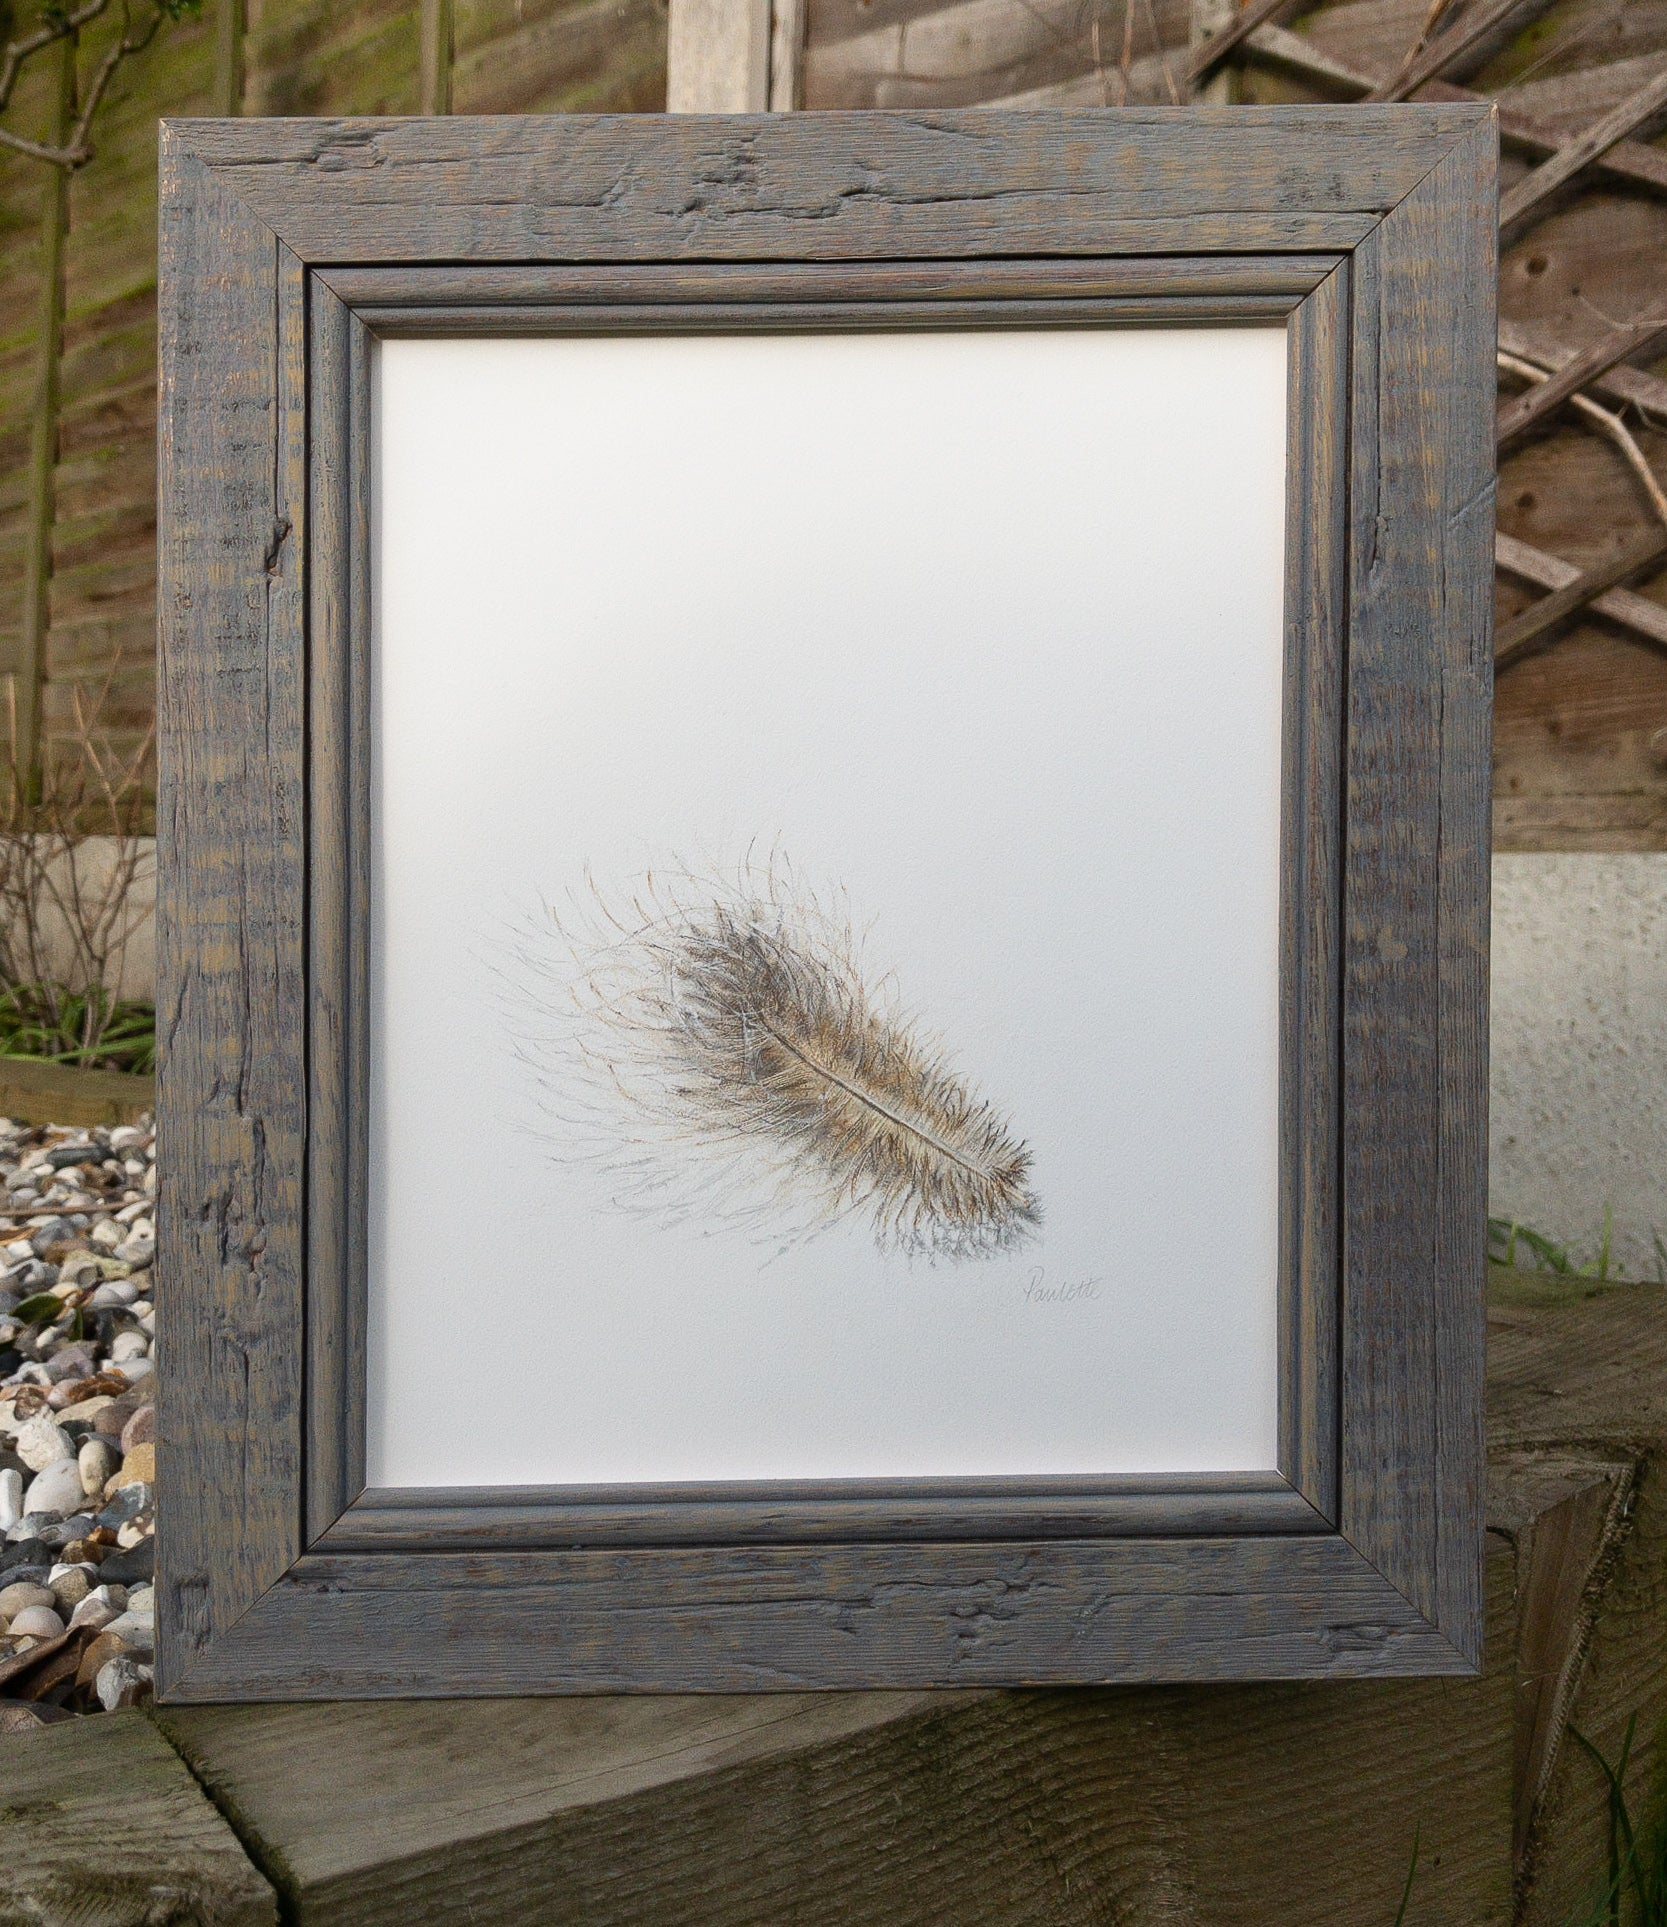 framed pencil drawing of buzzard feather